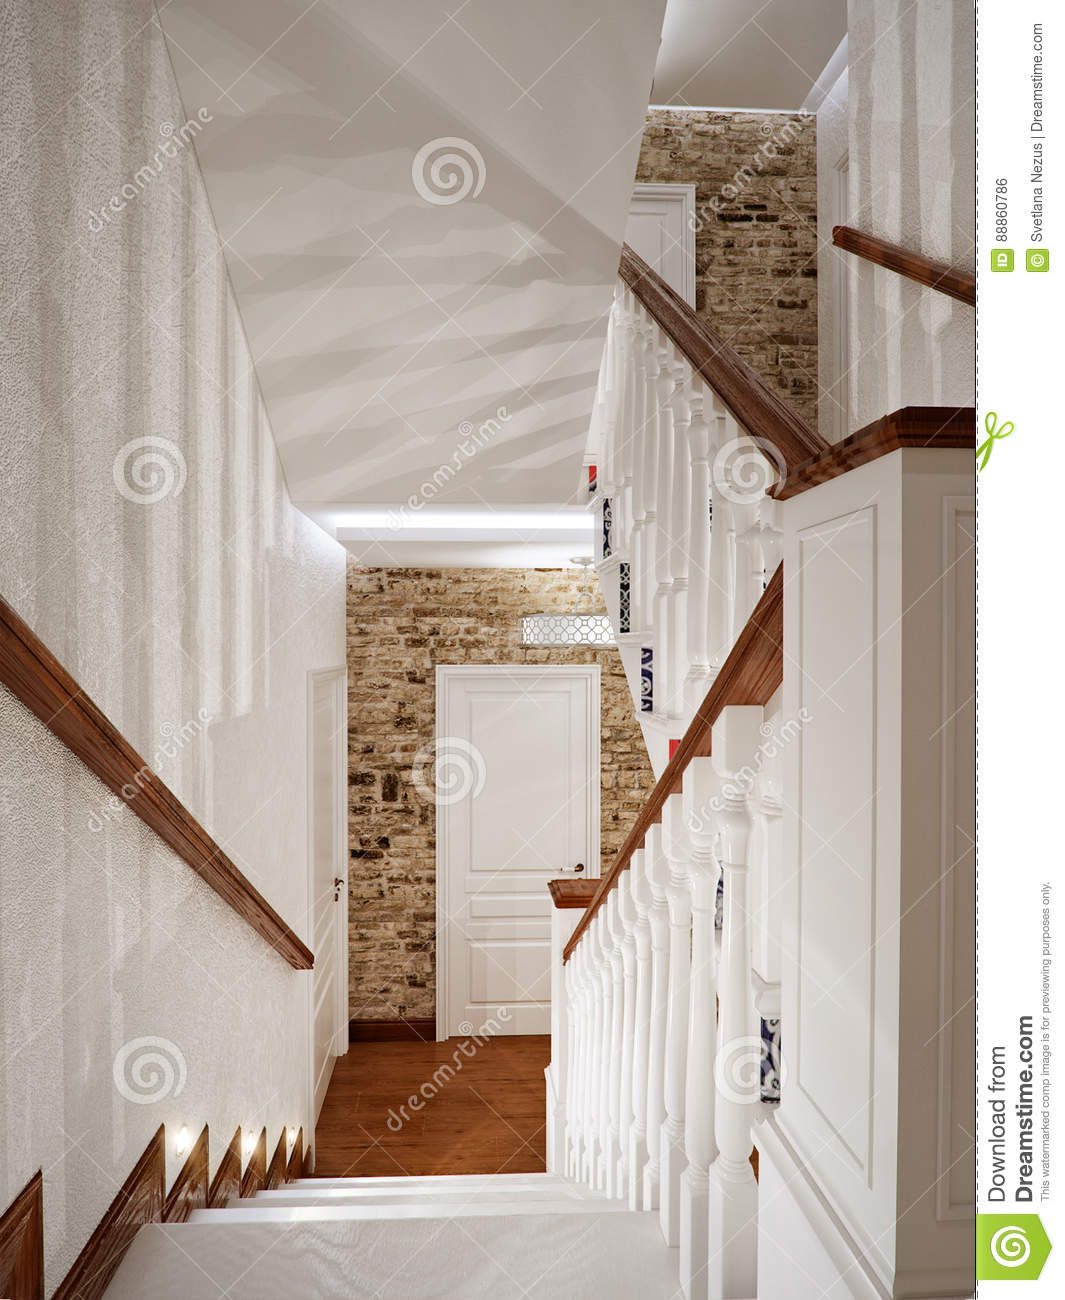 Design wooden railing with wooden balusters royalty free - Escaleras de madera interior ...